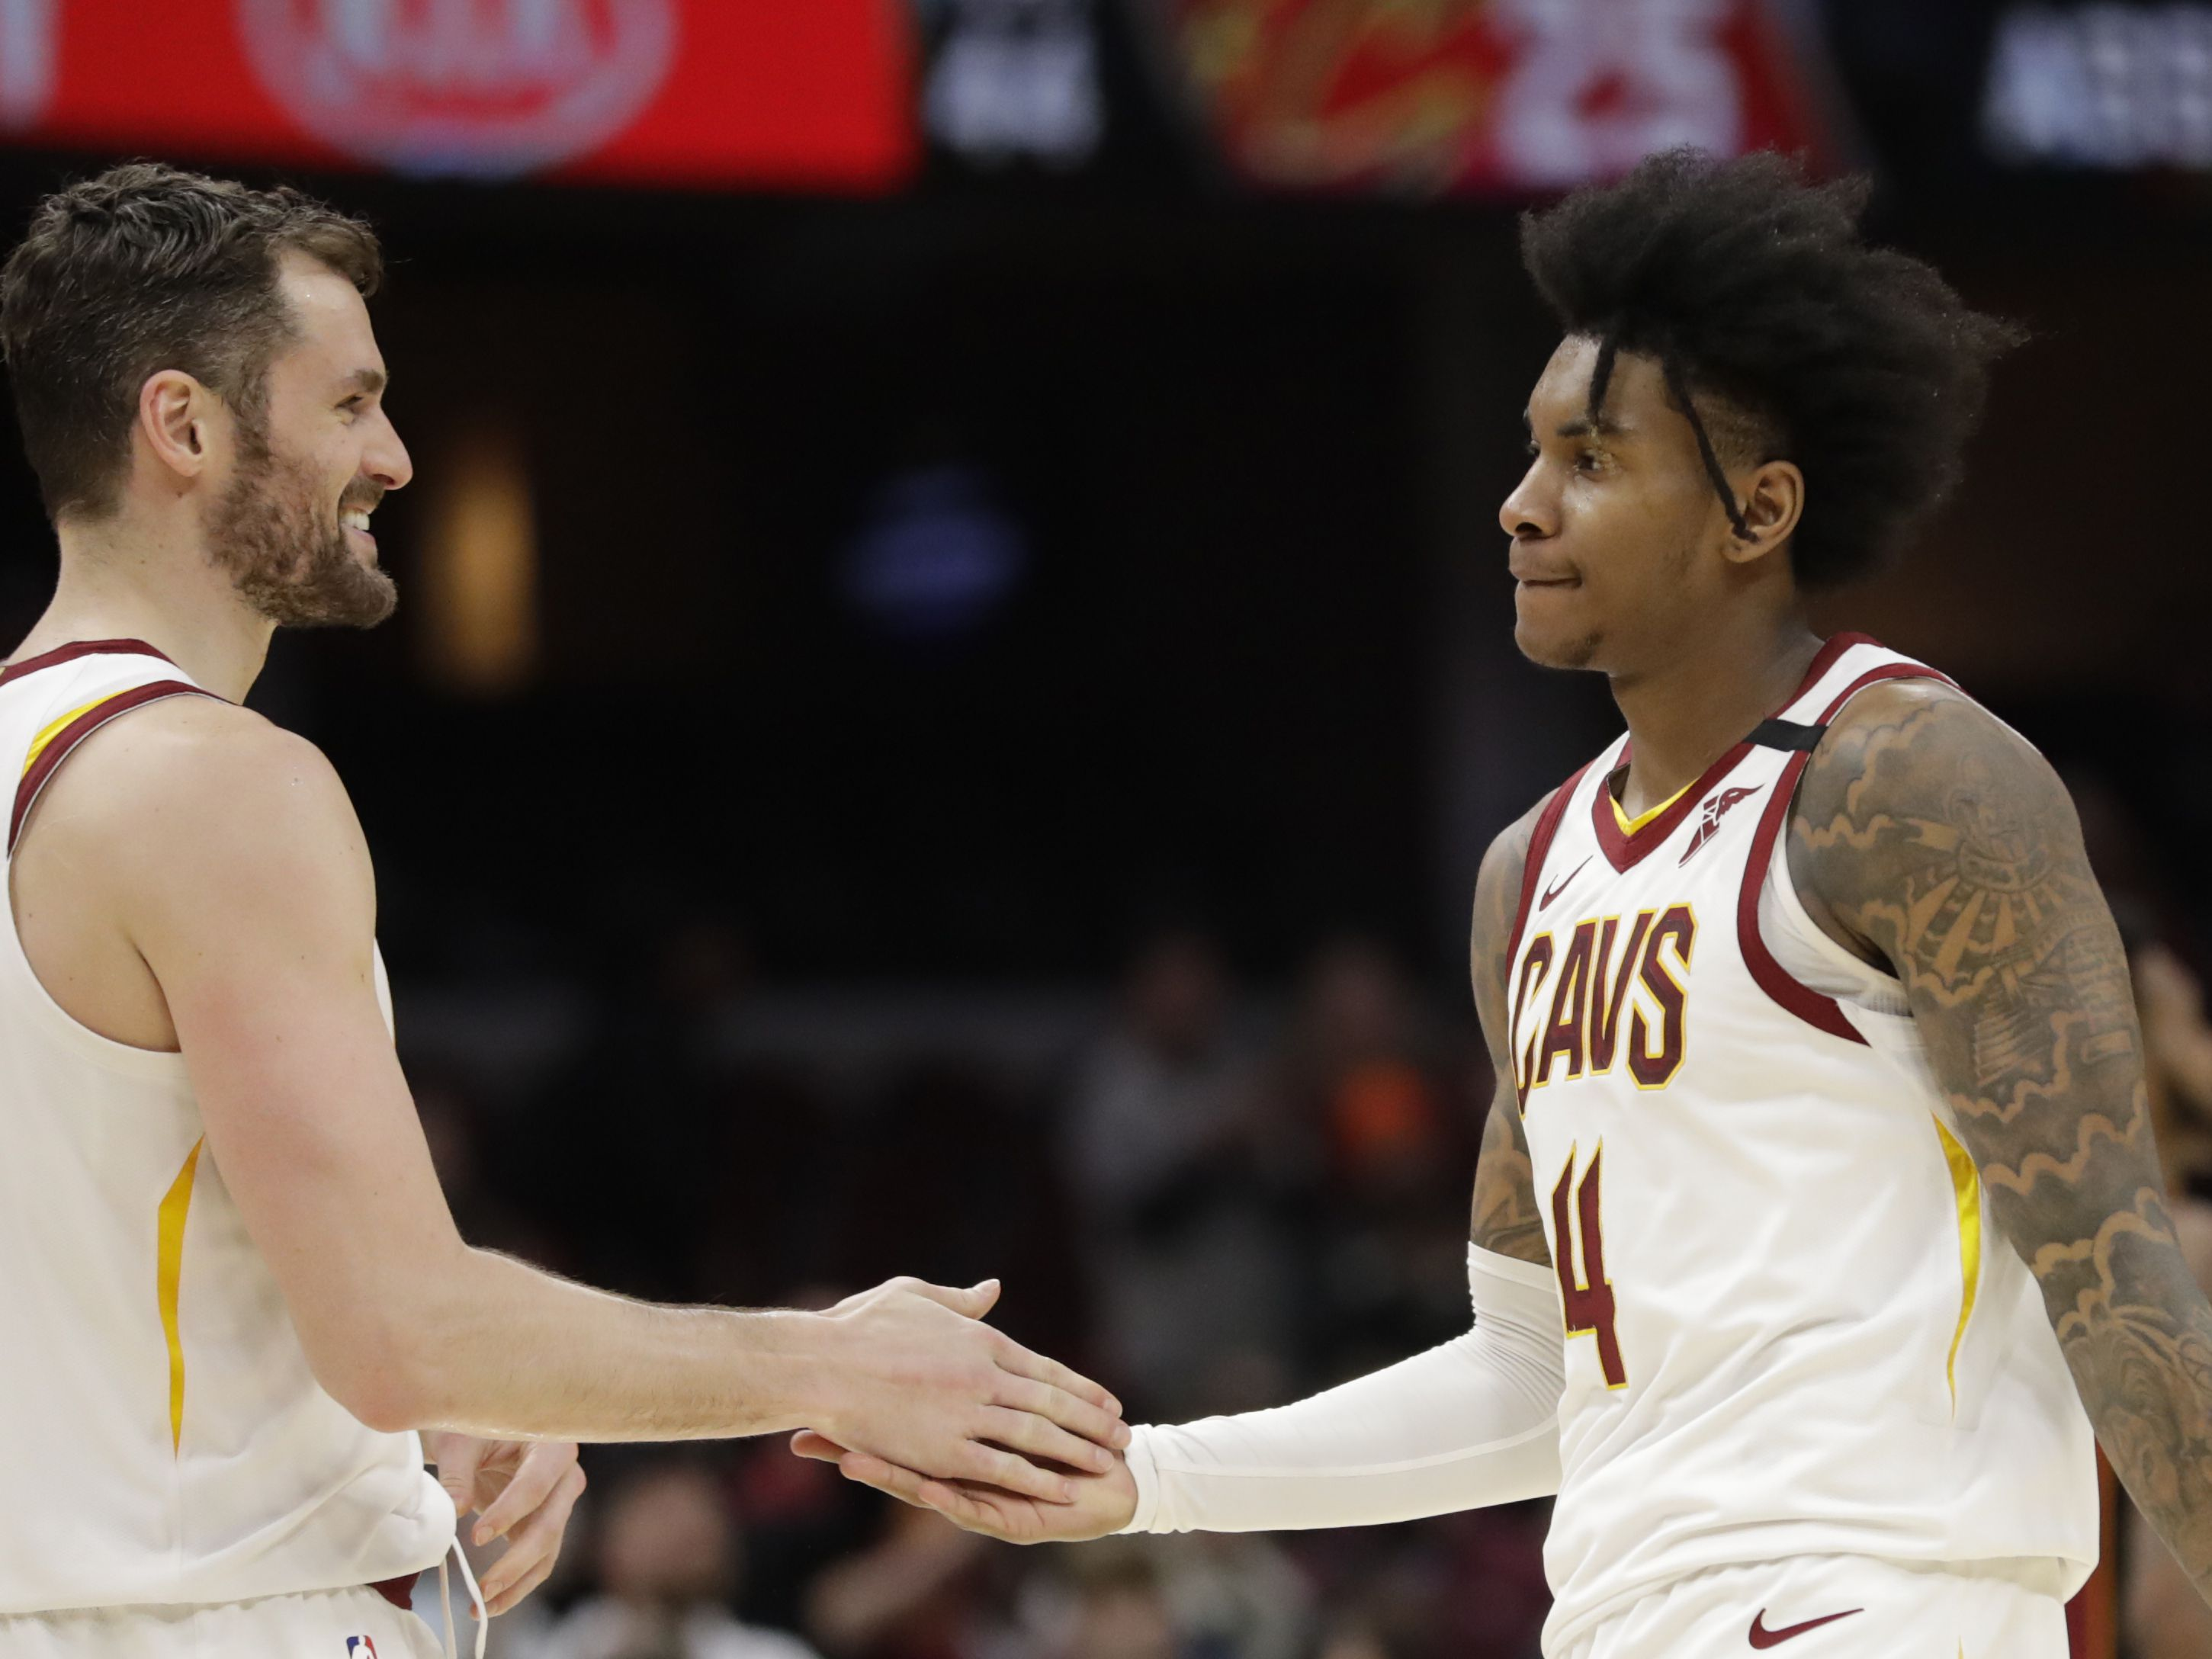 Porter leads Cavs to comeback win over Heat, 125-119 in OT